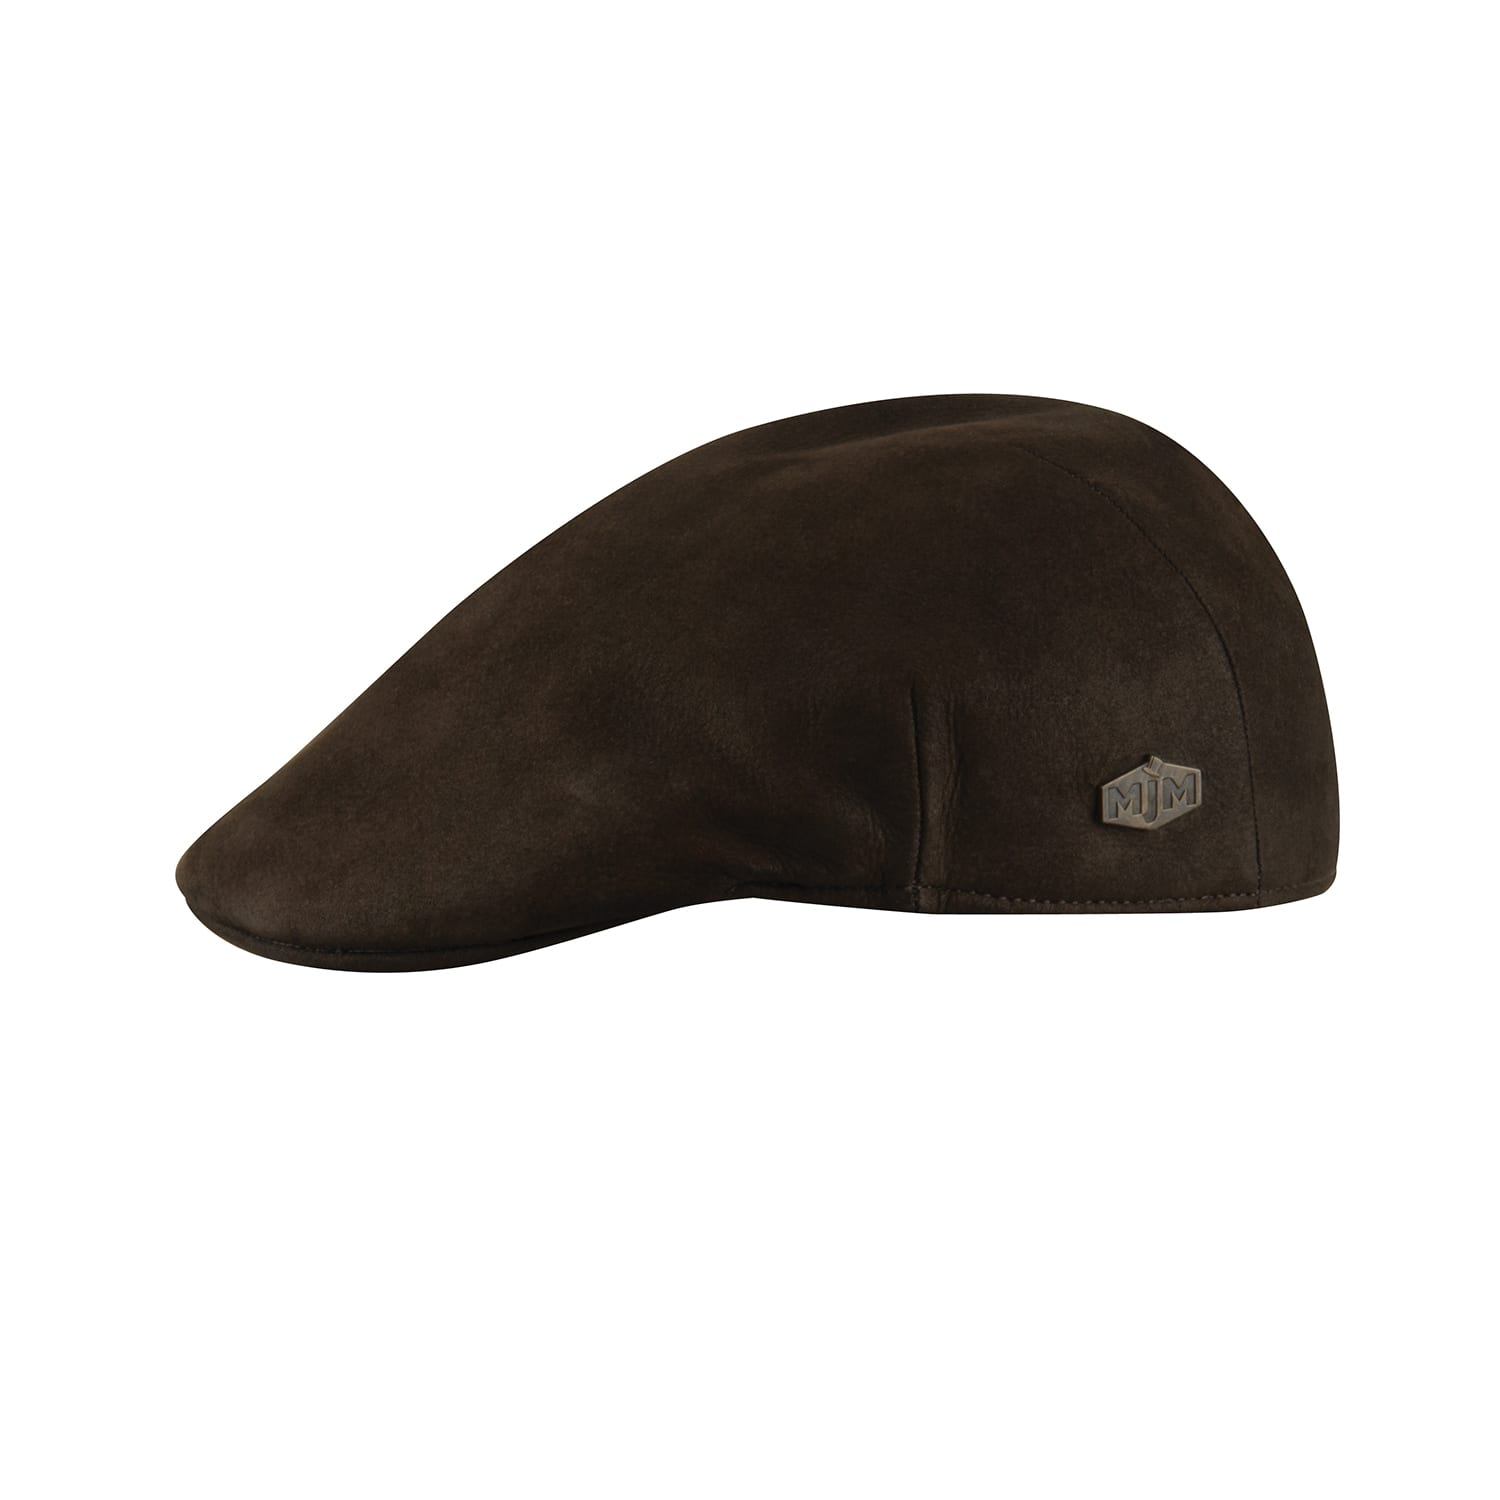 MJM Hatte - Country EL – Nappa Wax – Brown - Netnaturshop